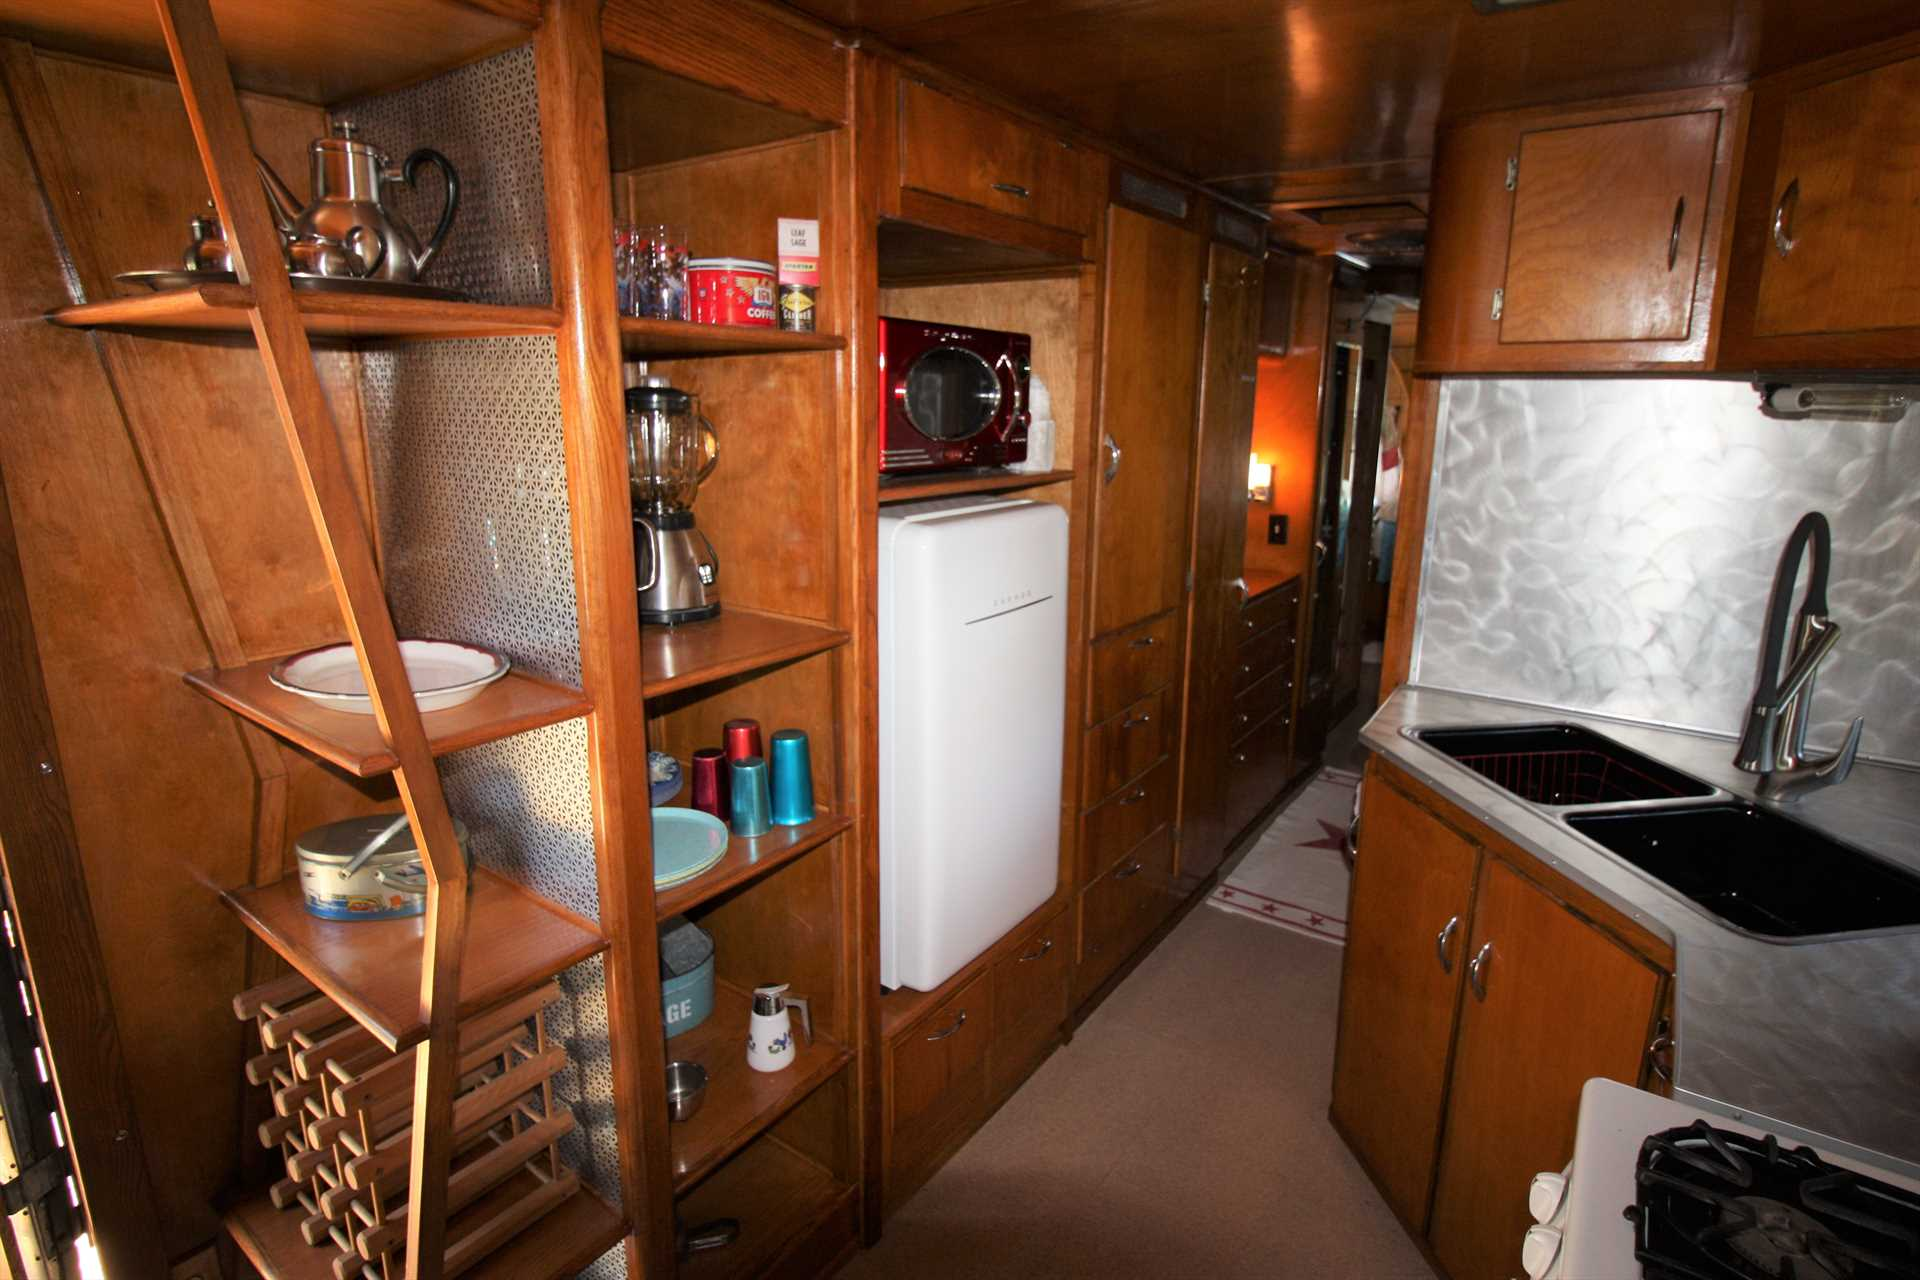 The Vintage Spartan Trailer Coach is living proof that wonderful things come in small packages!